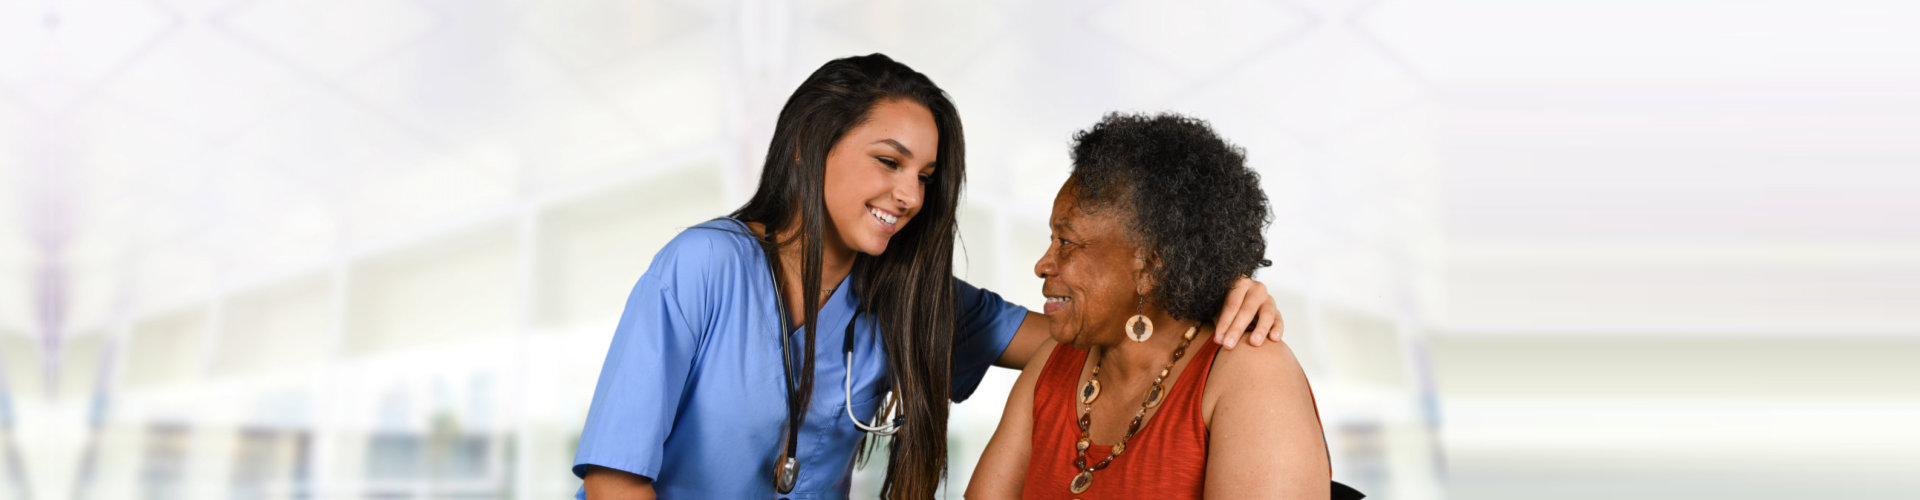 caregiver with elder woman looking at each other